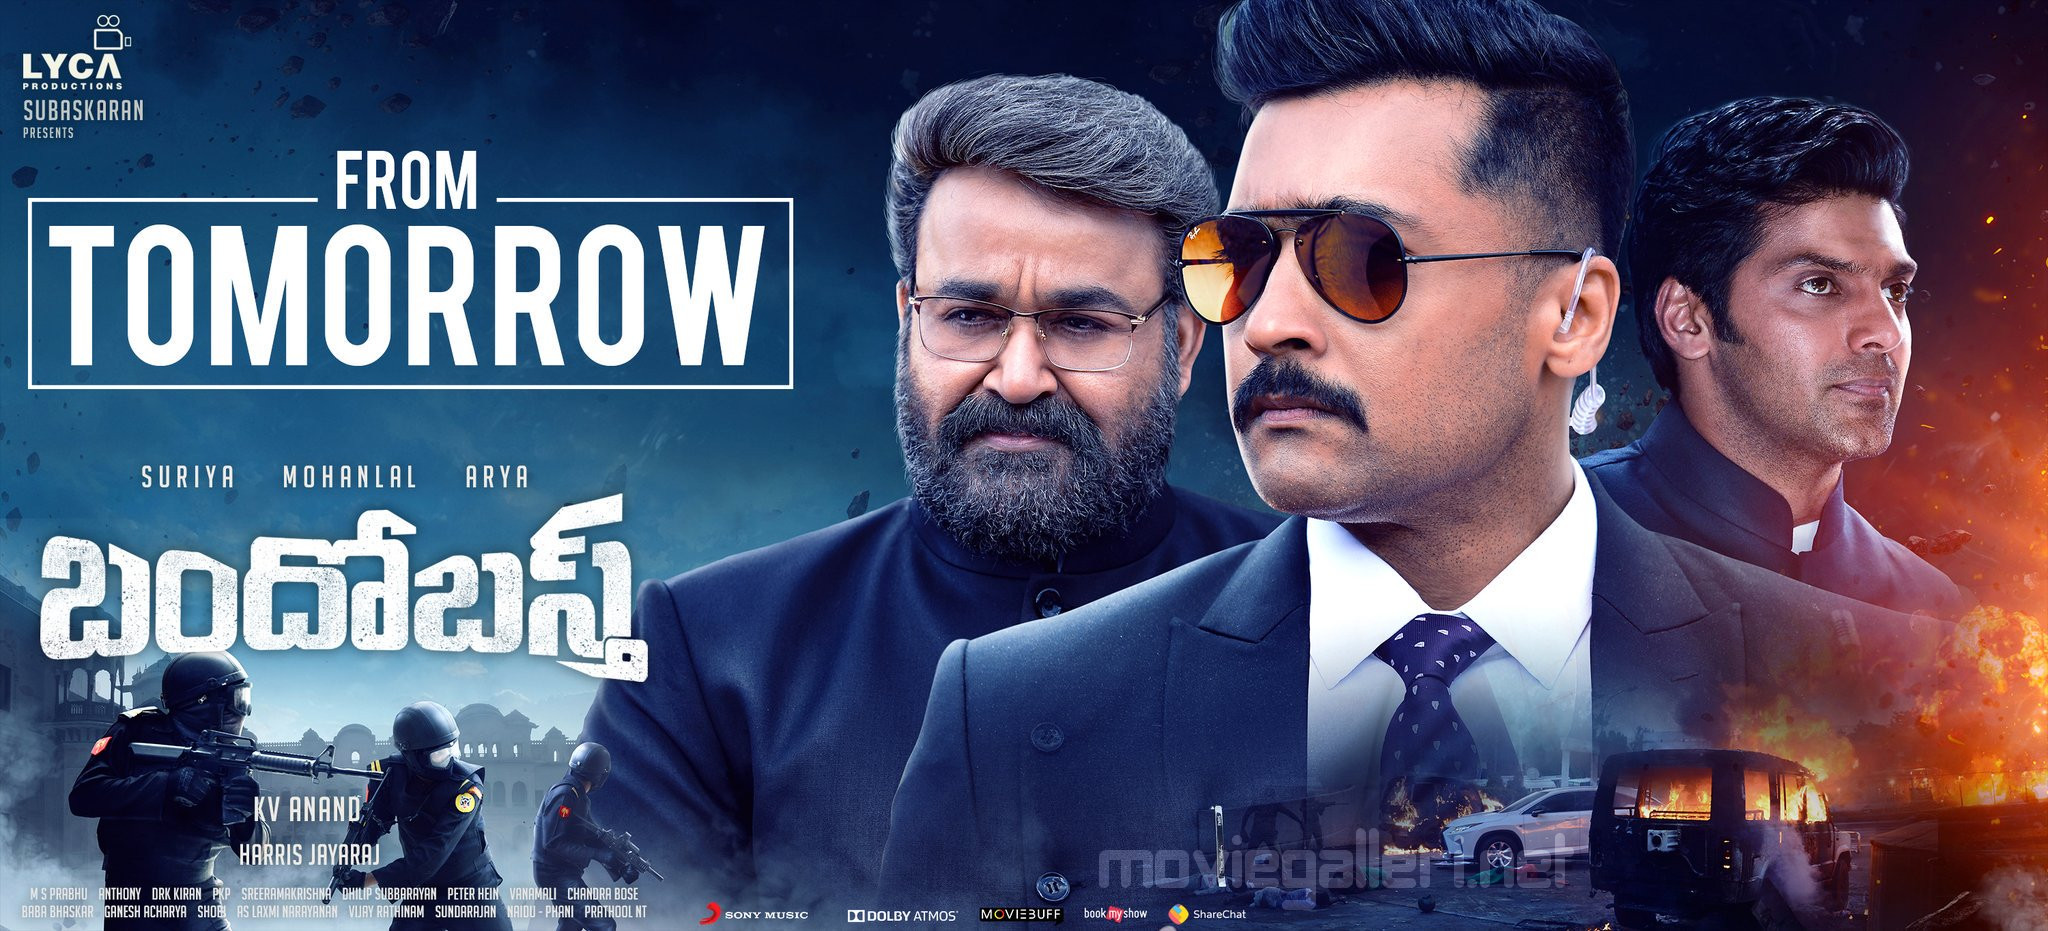 Mohanlal Suriya Arya Bandobast Movie Tomorrow Release Posters